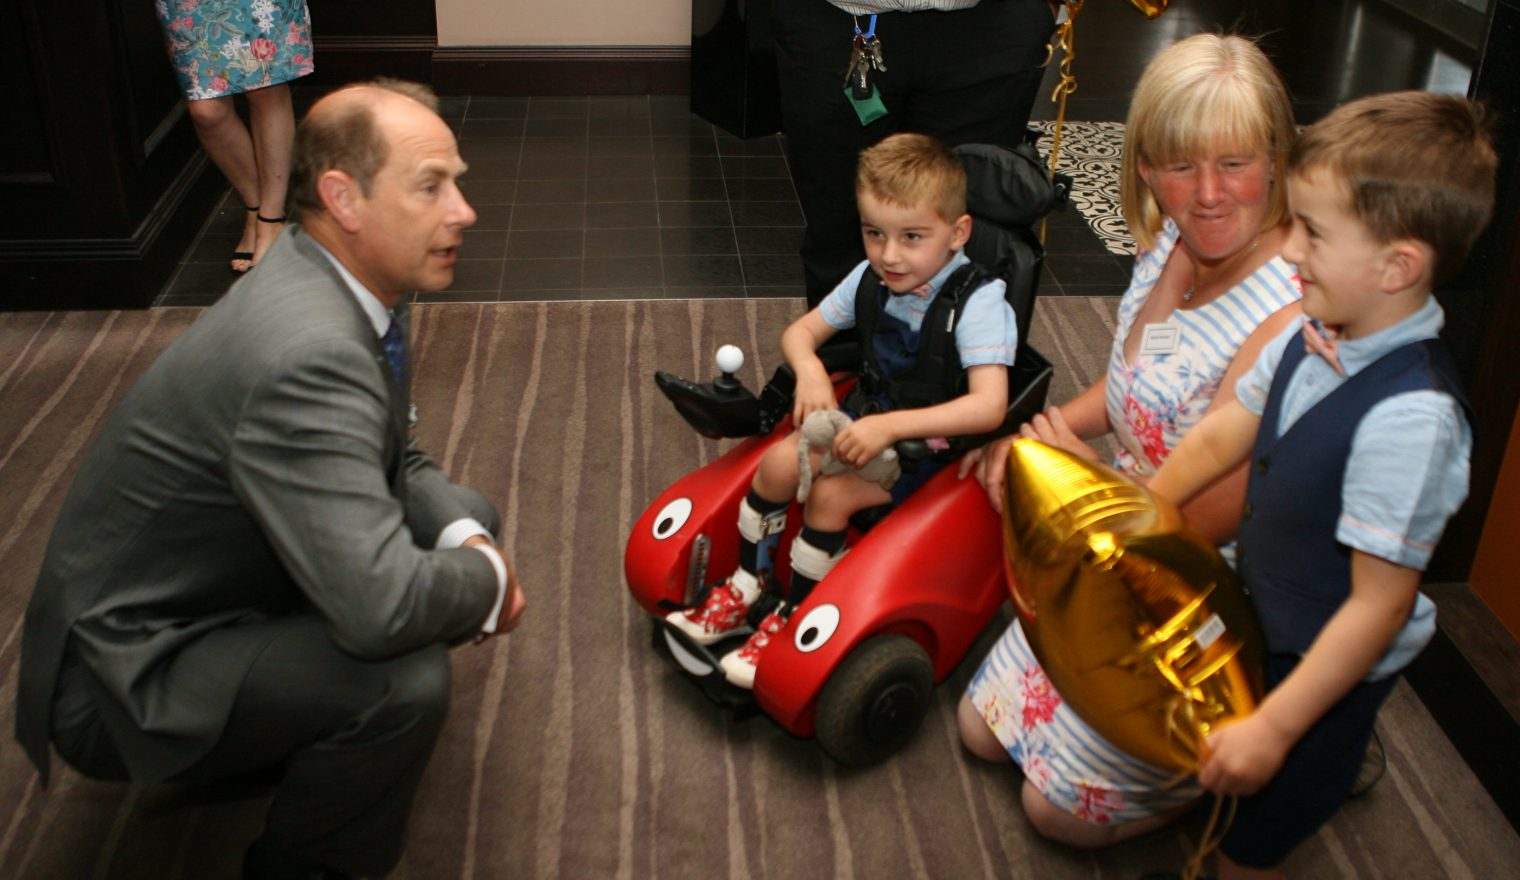 Prince Edward crouching down to speak to two children and their mum